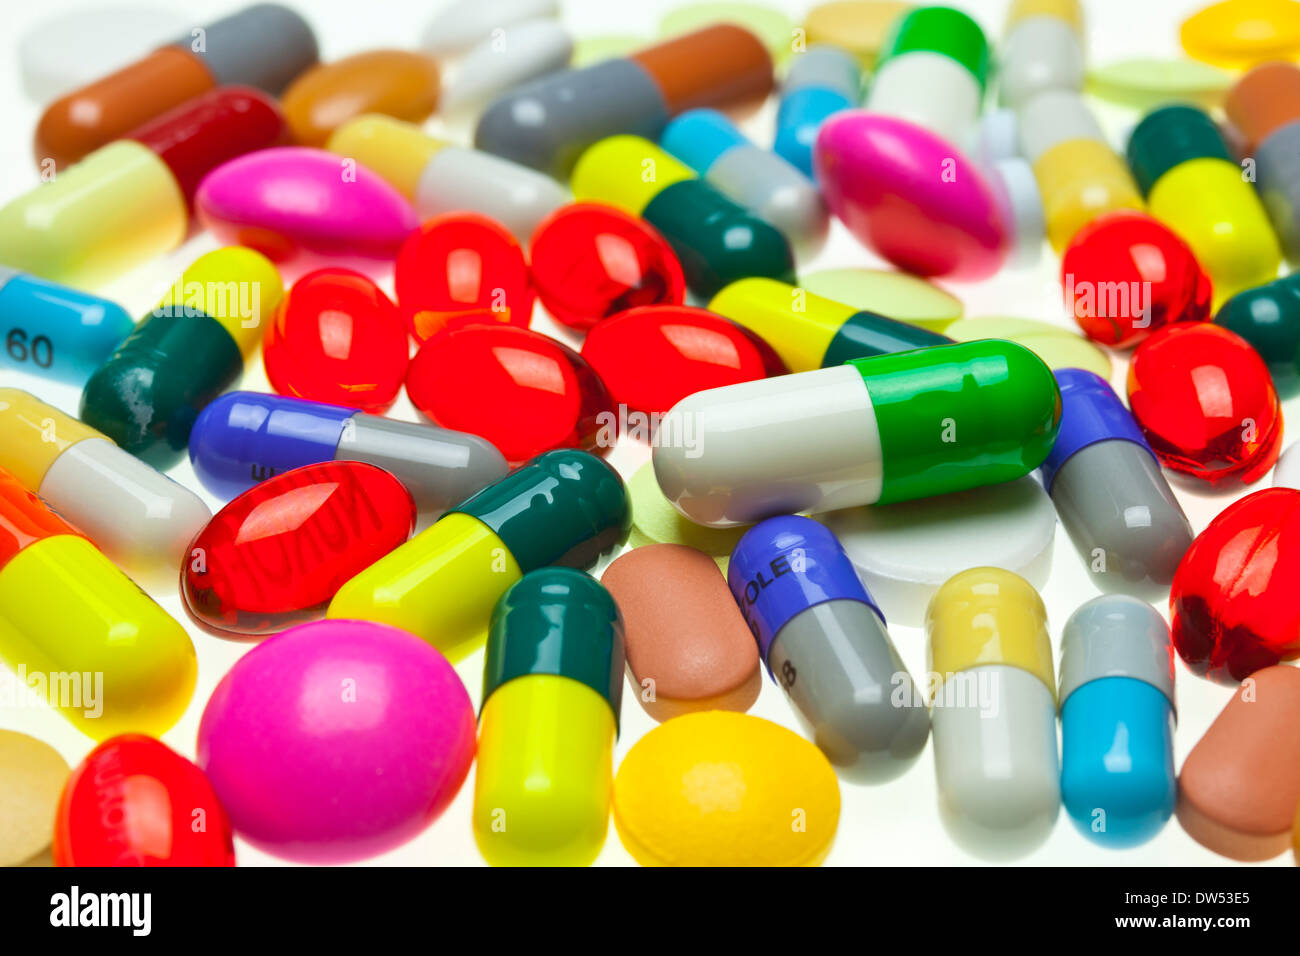 multi-coloured assorted medicines drugs pills and tablets on a white background - Stock Image